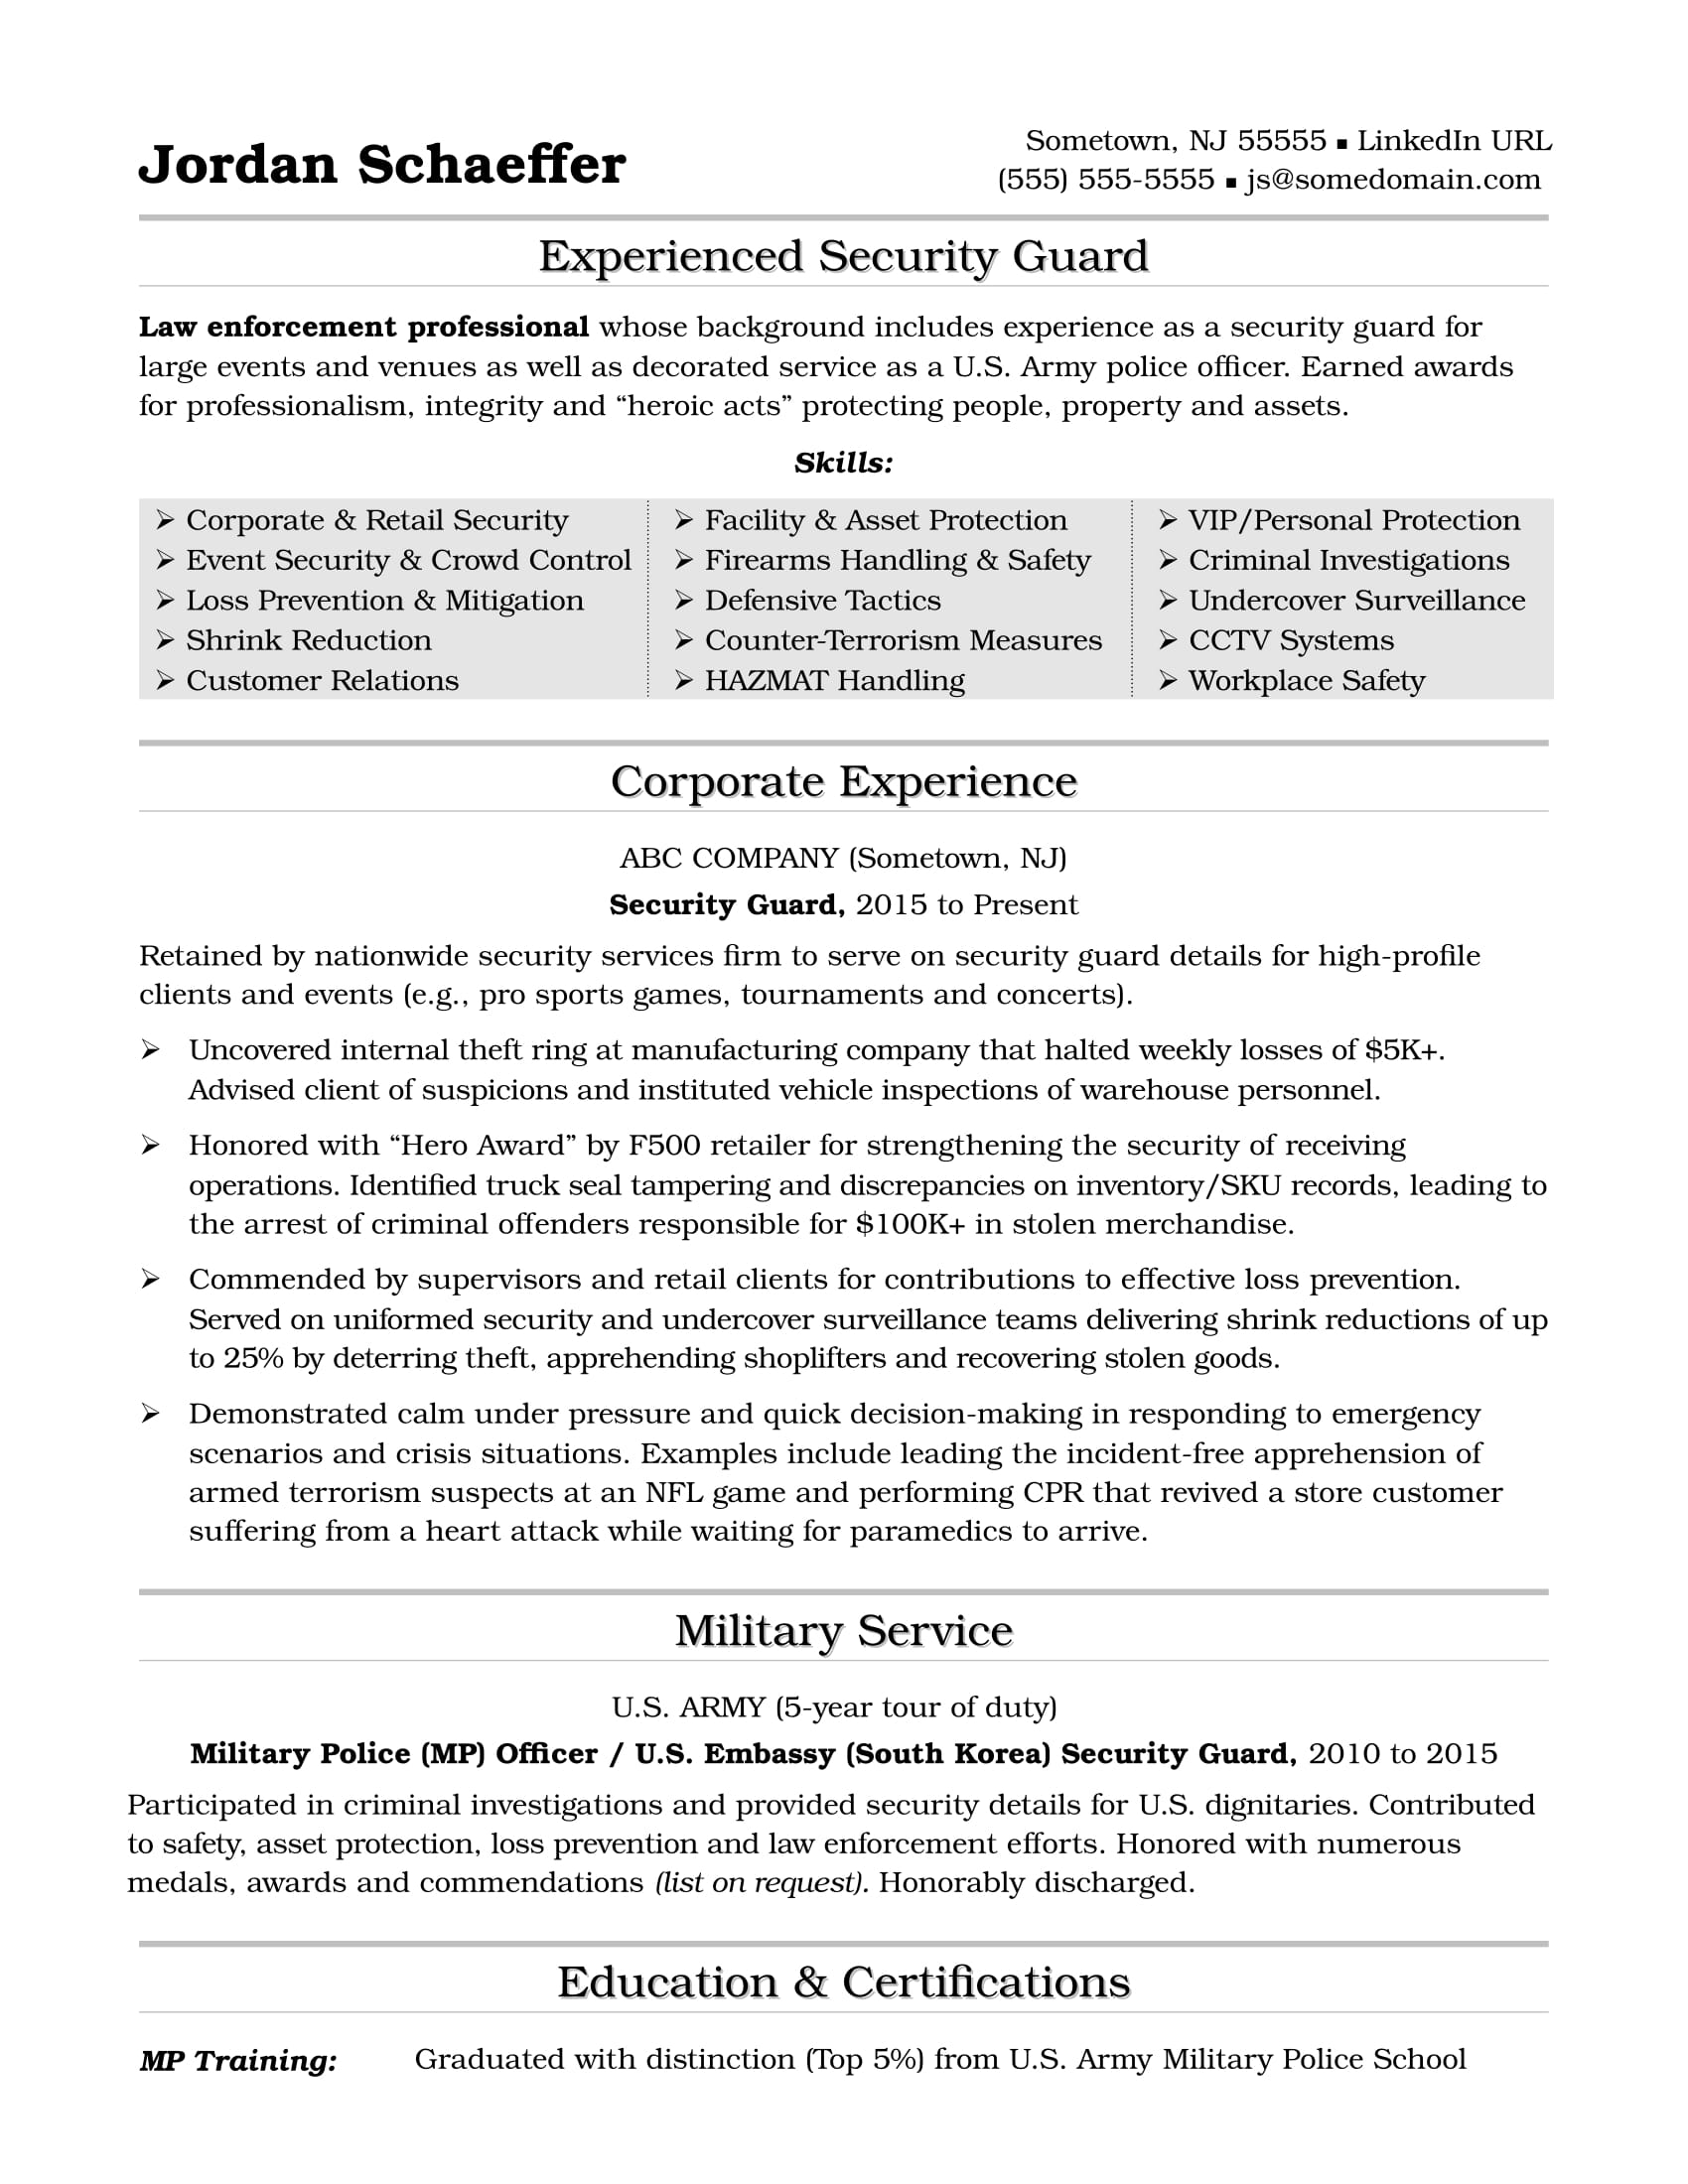 resume Sample Of Resume For Security Guard security guard resume sample monster com sample